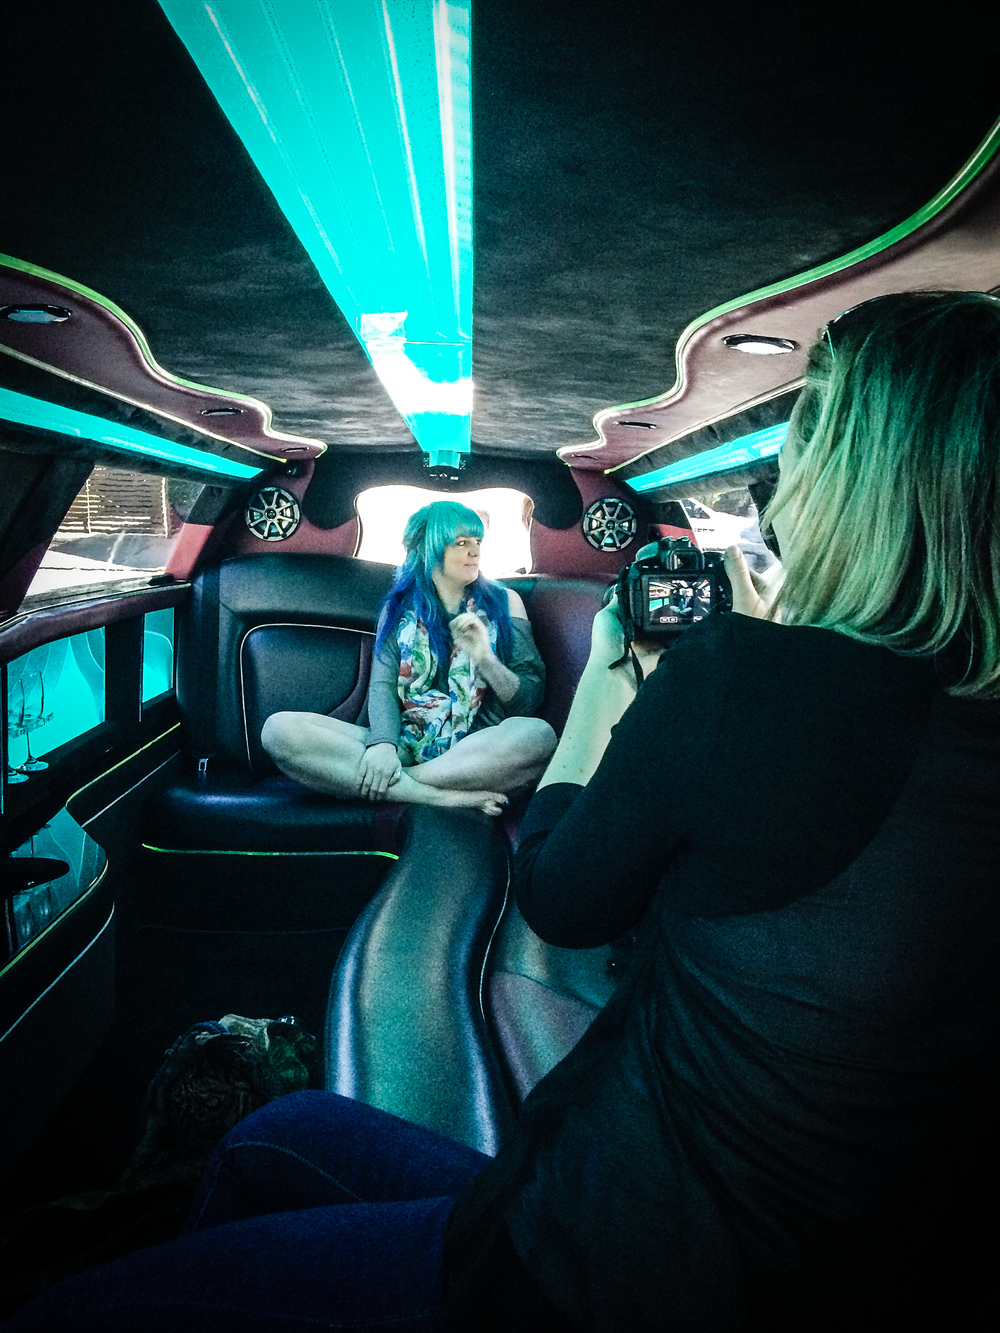 Jaymee Tully being interviewed by Jasmine Gailer during her limousine ride to the studio.